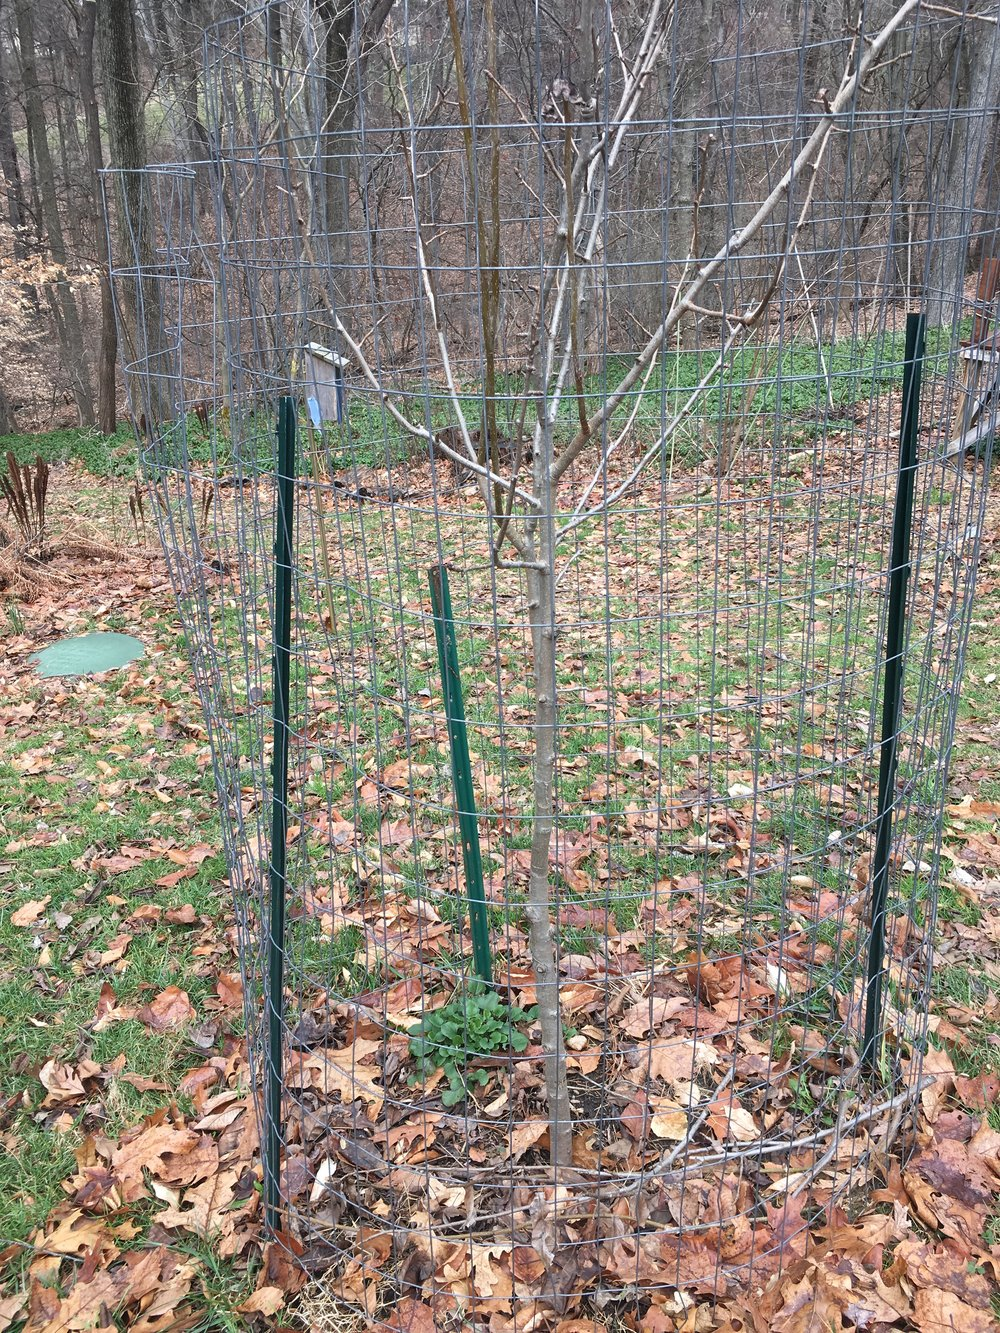 Simple metal garden stakes and galvanized wire will protect young trees while they get established. Once a tree is over 5' tall, the deer will not be able to reach the higher foliage for grazing. Black wire or plastic mesh often blends well with surroundings. -